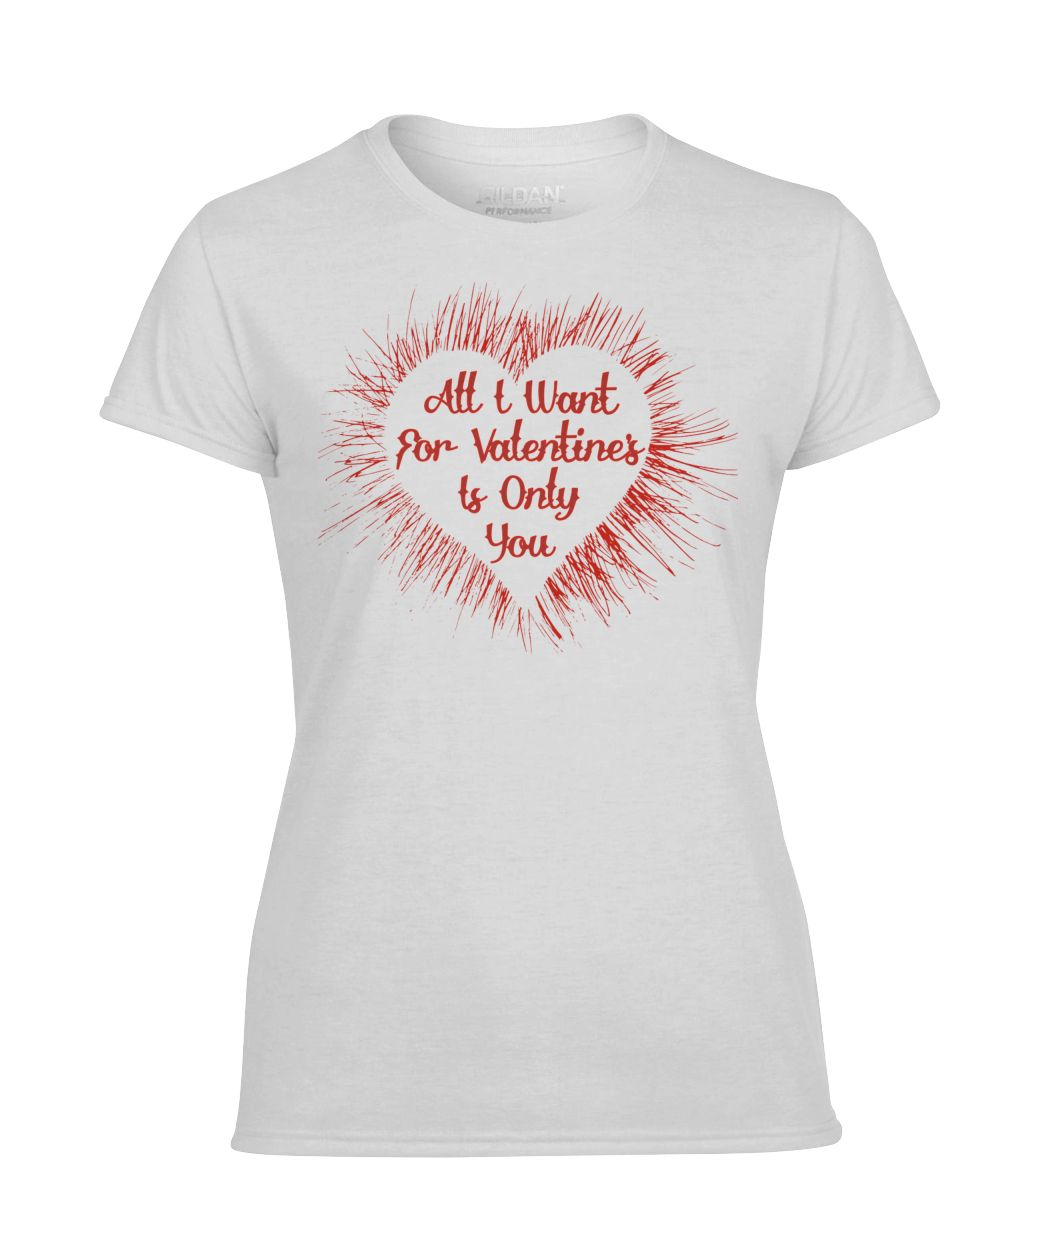 Shirt design buy - Valentine Day T Shirt For Girls We Have Creativity For T Shirt Design